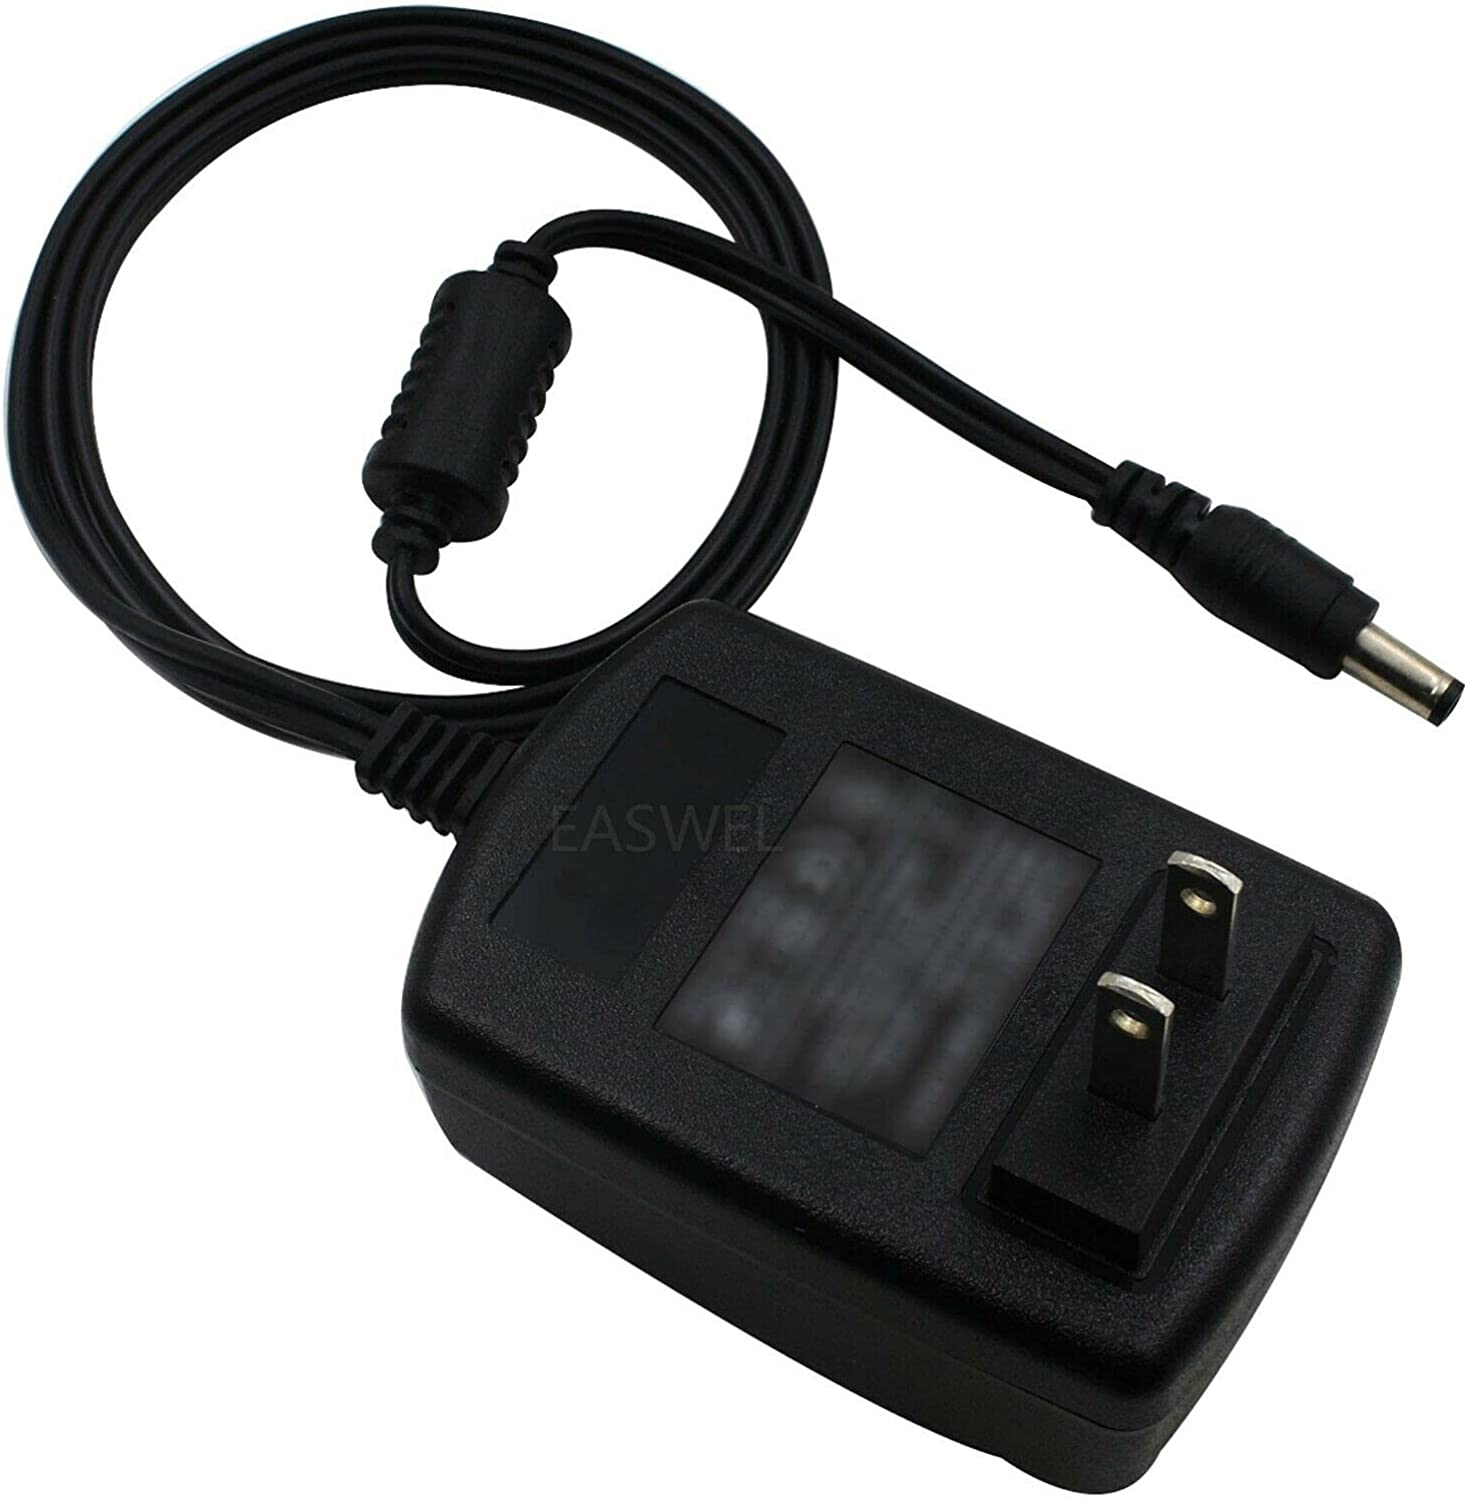 AC Adapter Charger Power Cord PAC Max 70% OFF Booster New popularity for ES6000 Replacement